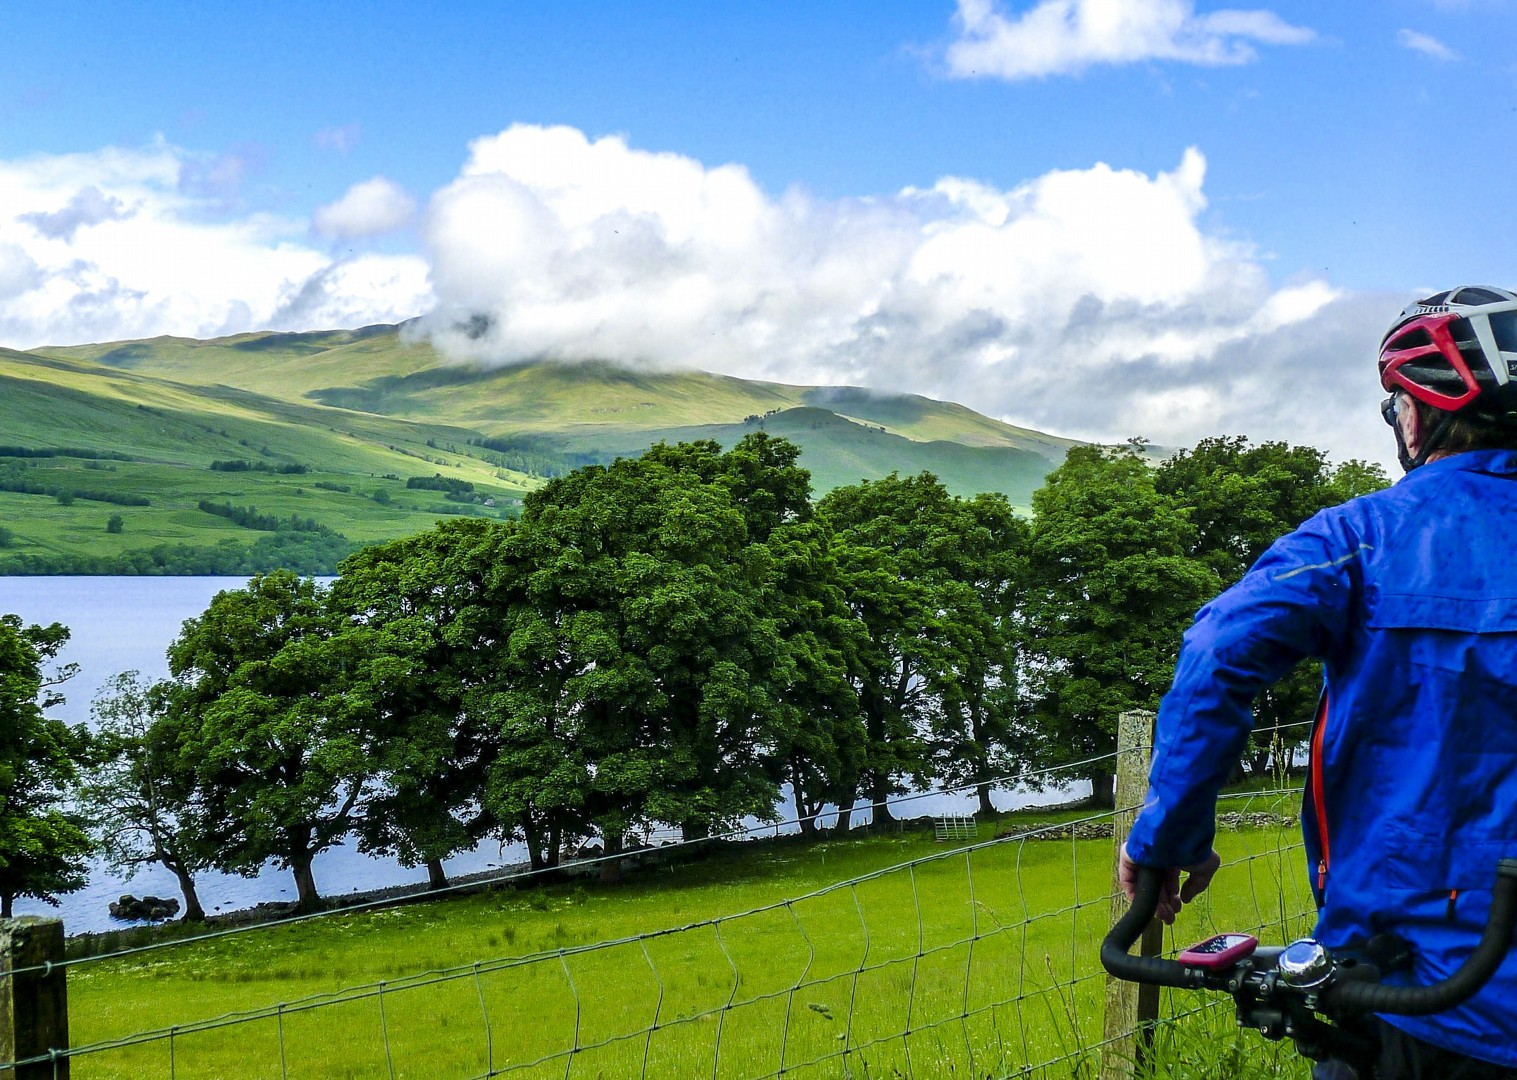 hills-cycling-fun-tour-scotland-uk-mountains-loch-lake-cycle-paths.jpg - NEW! UK - Scotland - Lochs and Glens - Guided Leisure Cycling Holiday - Leisure Cycling